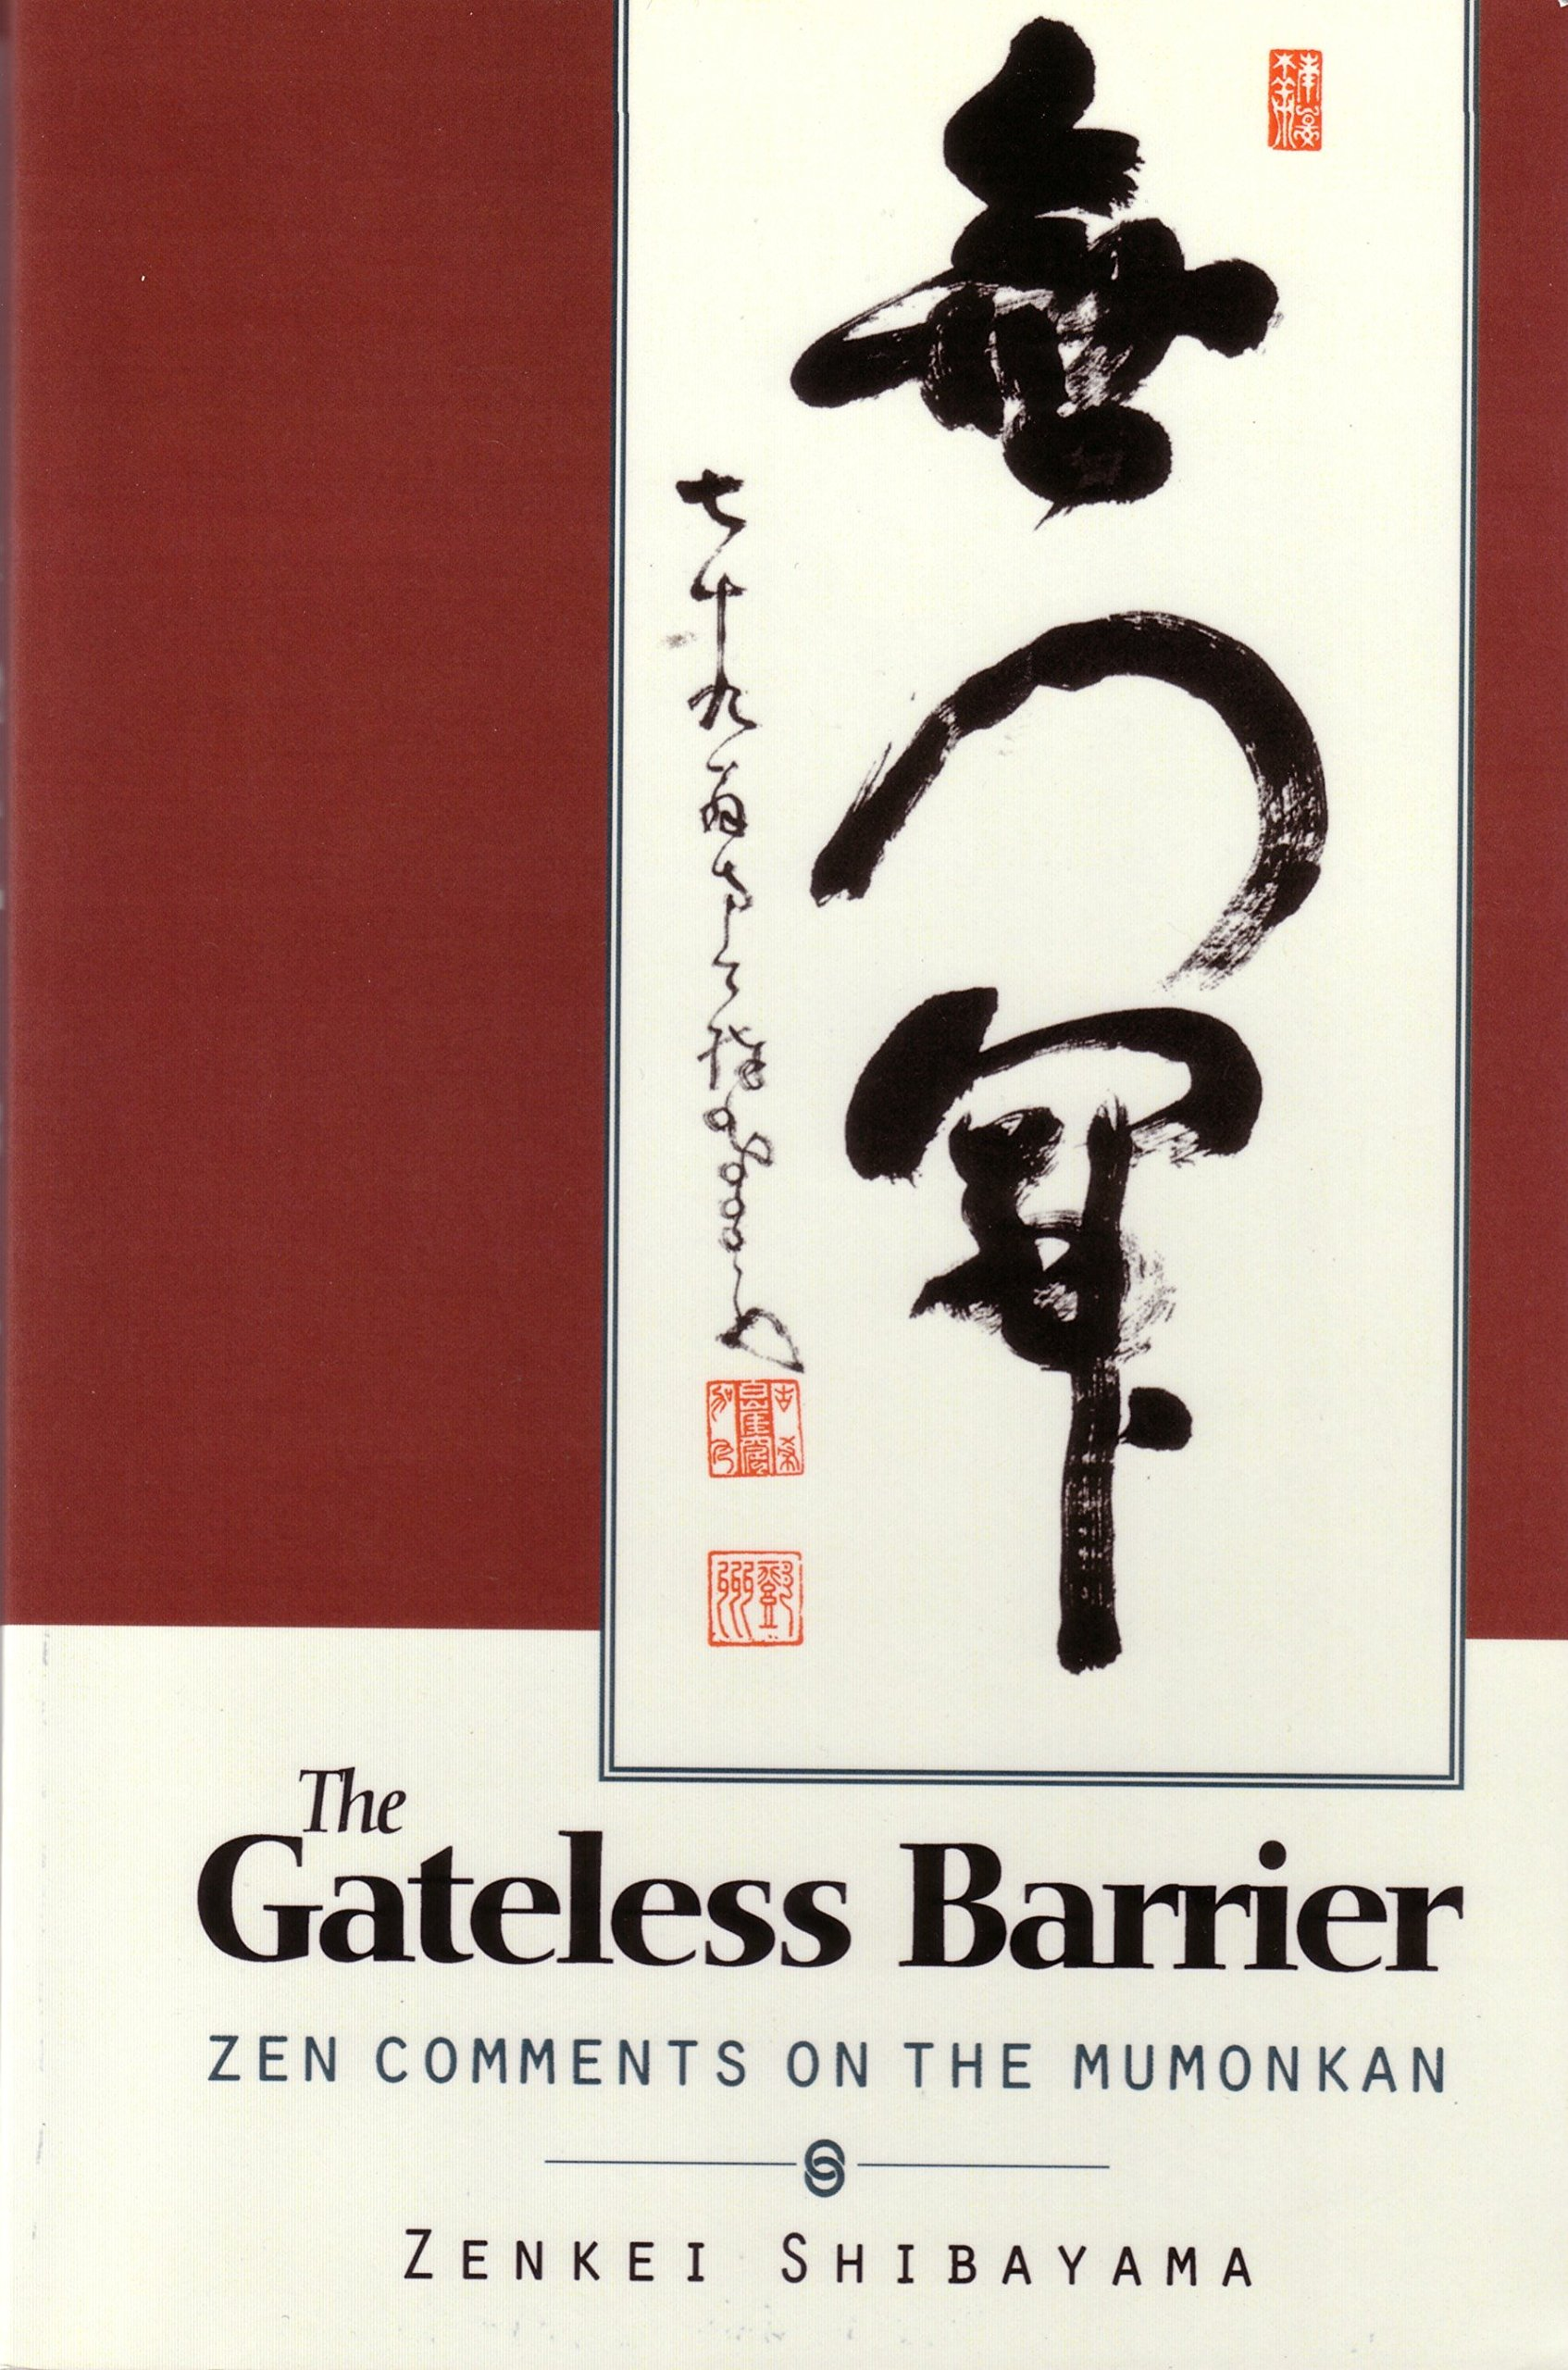 Shibayama Gateless Barrier cover art